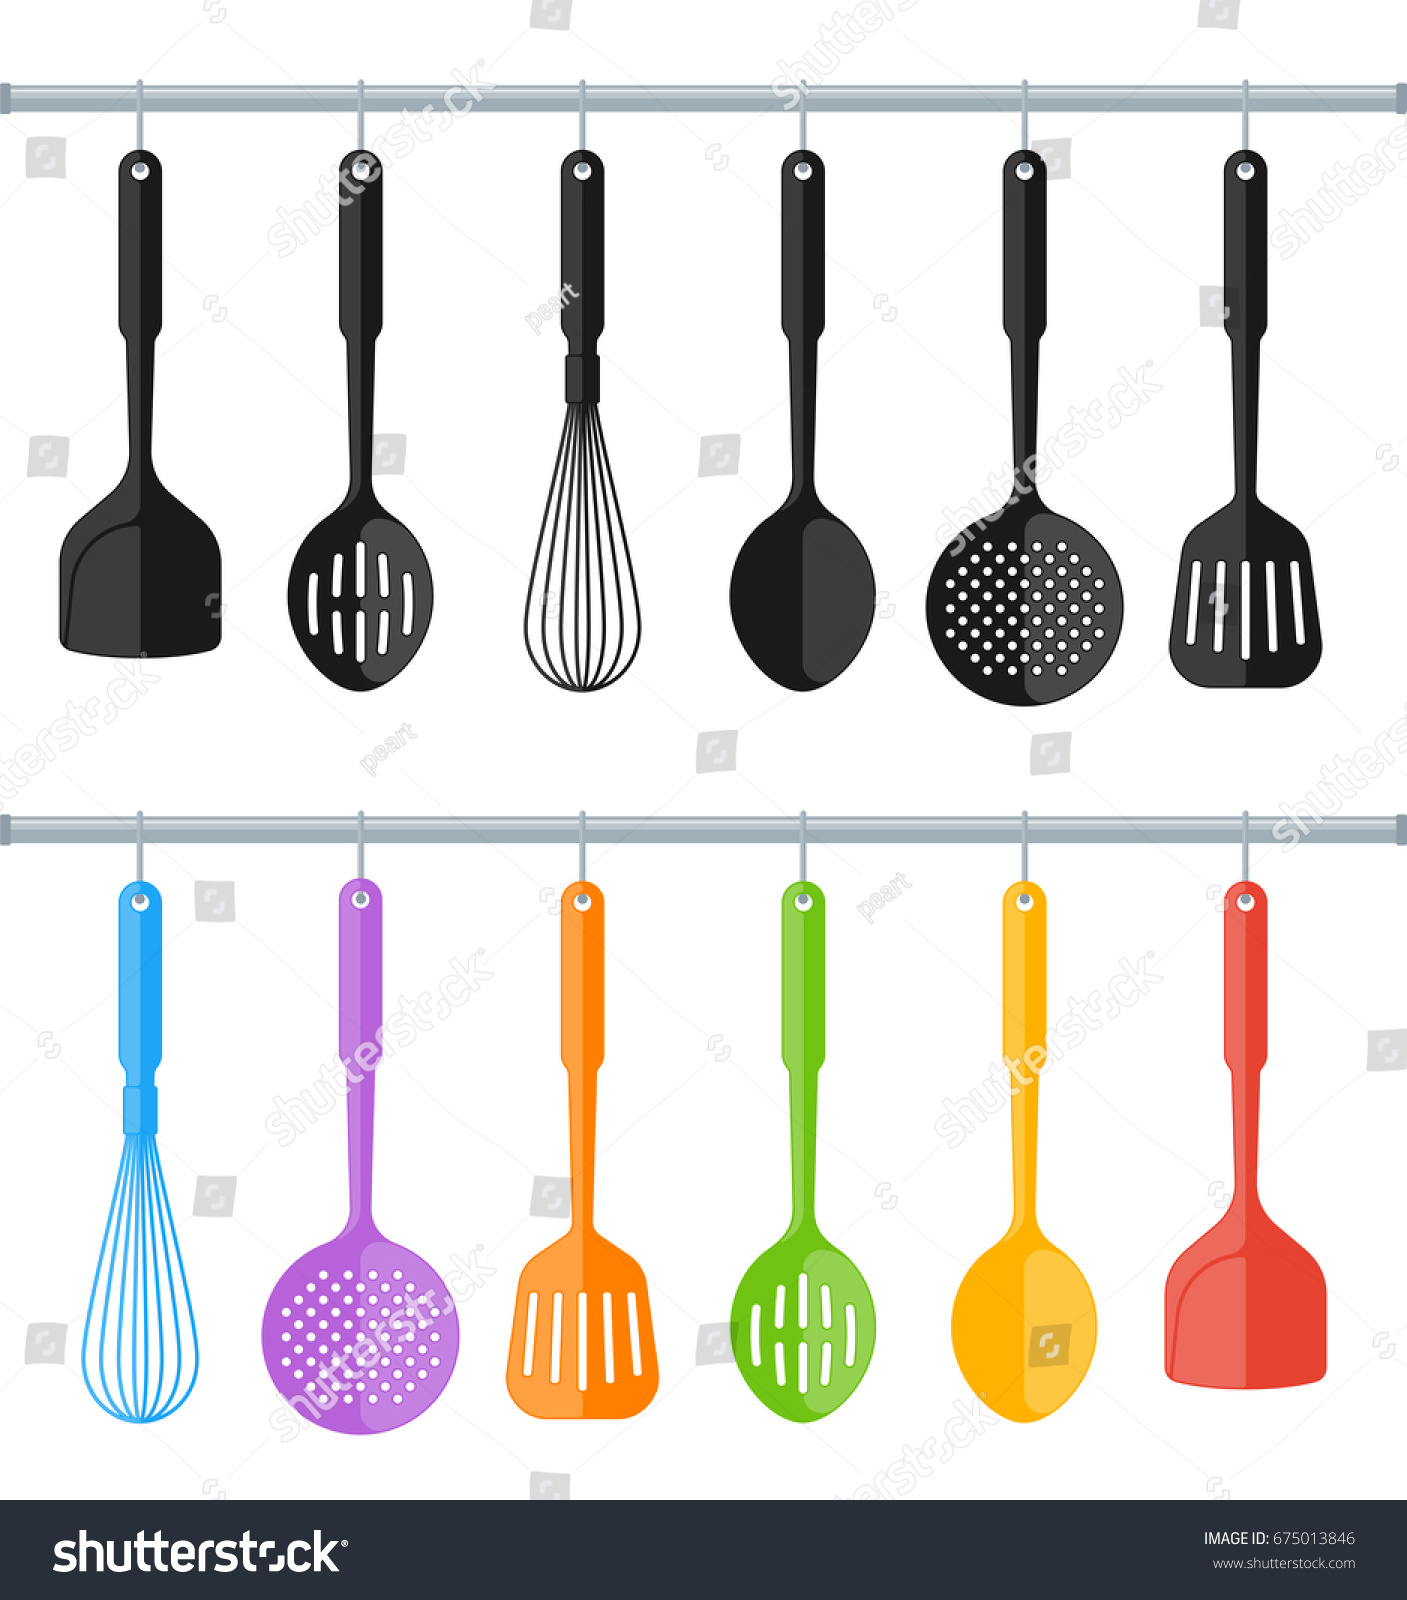 Black And Colorful Hanging Plastic Kitchen Utensil Set. Flat Concept  Illustration Of Cooking Tools.